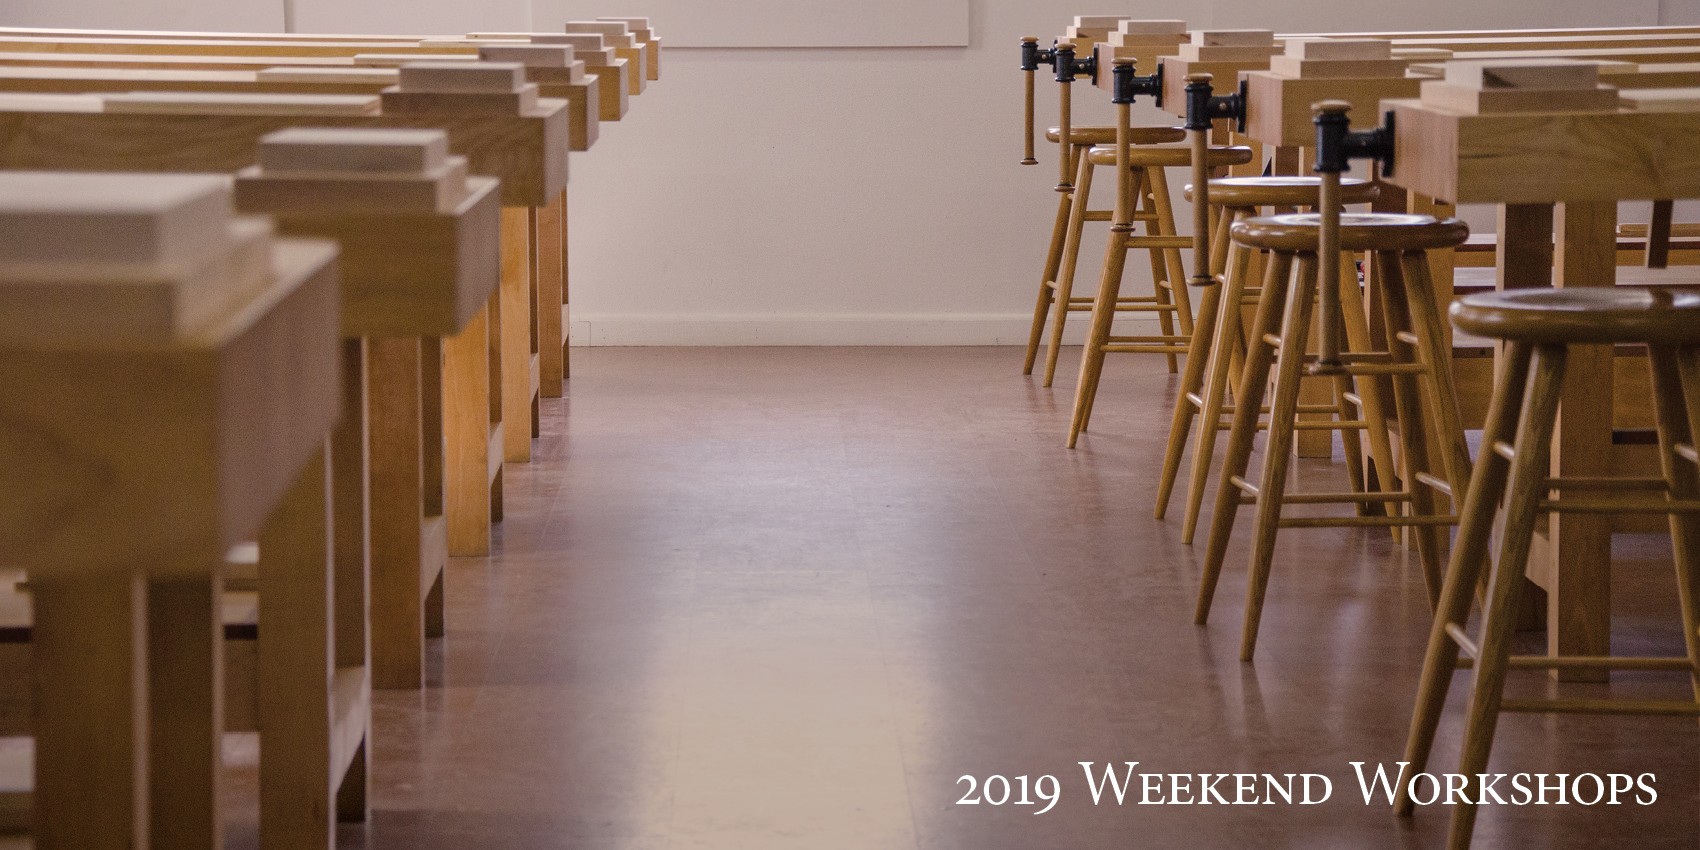 2019 Weekend Workshops